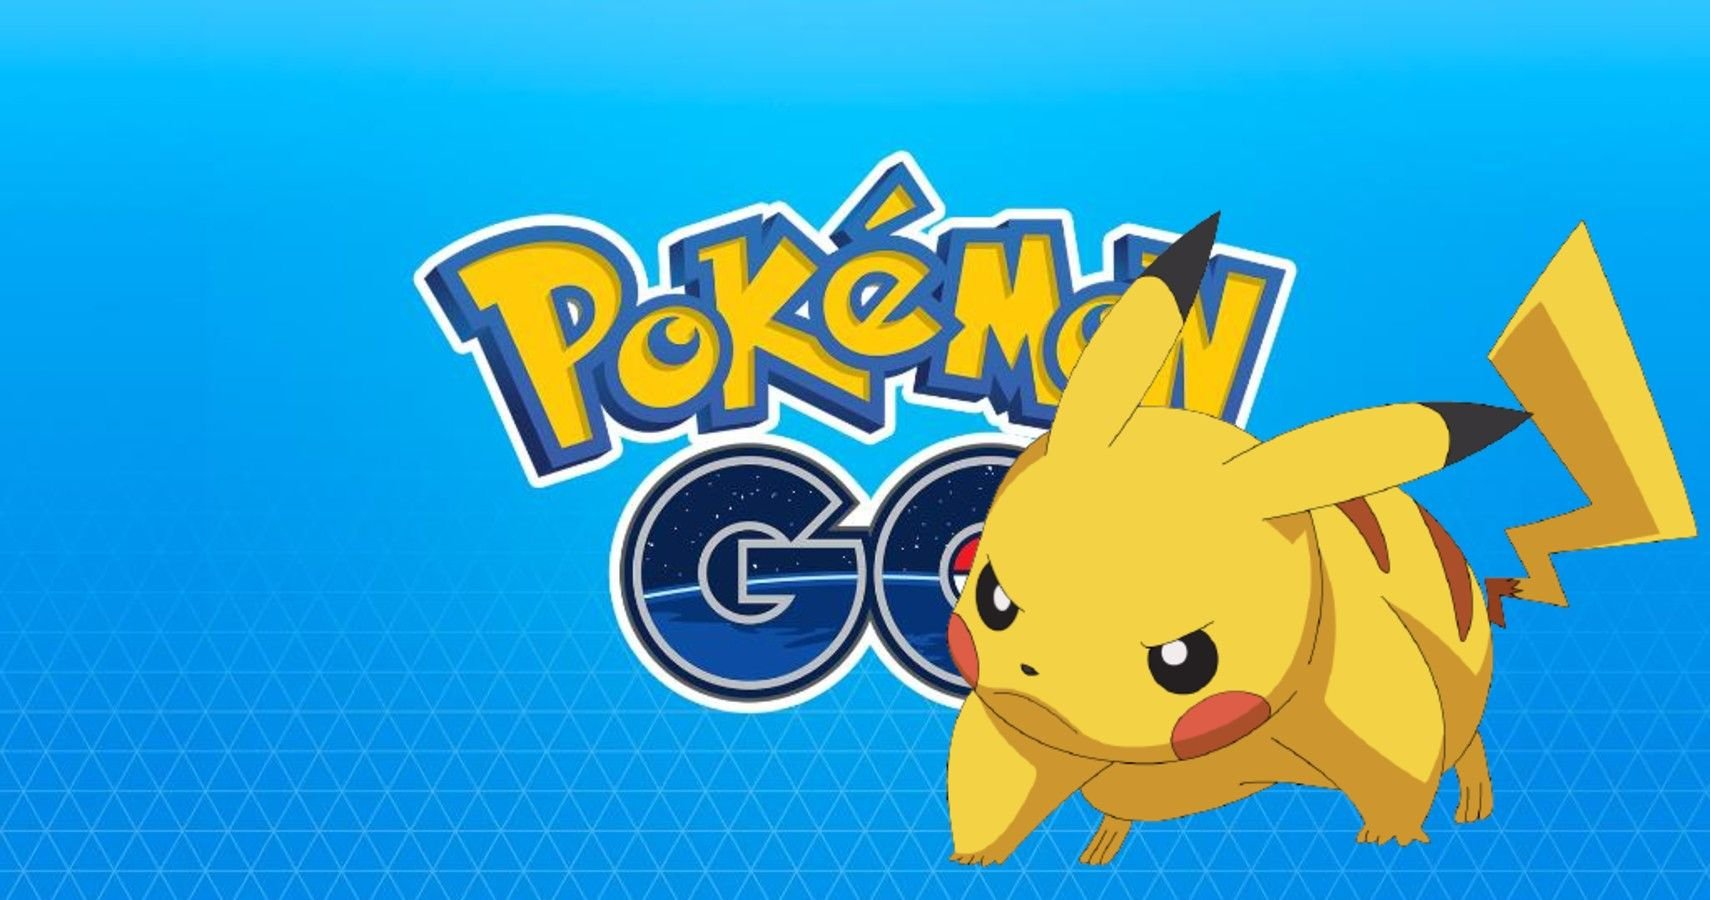 Pokemon Go Players Hit Back At Roadmap Detailing The Removal Of Game's Pandemic Perks